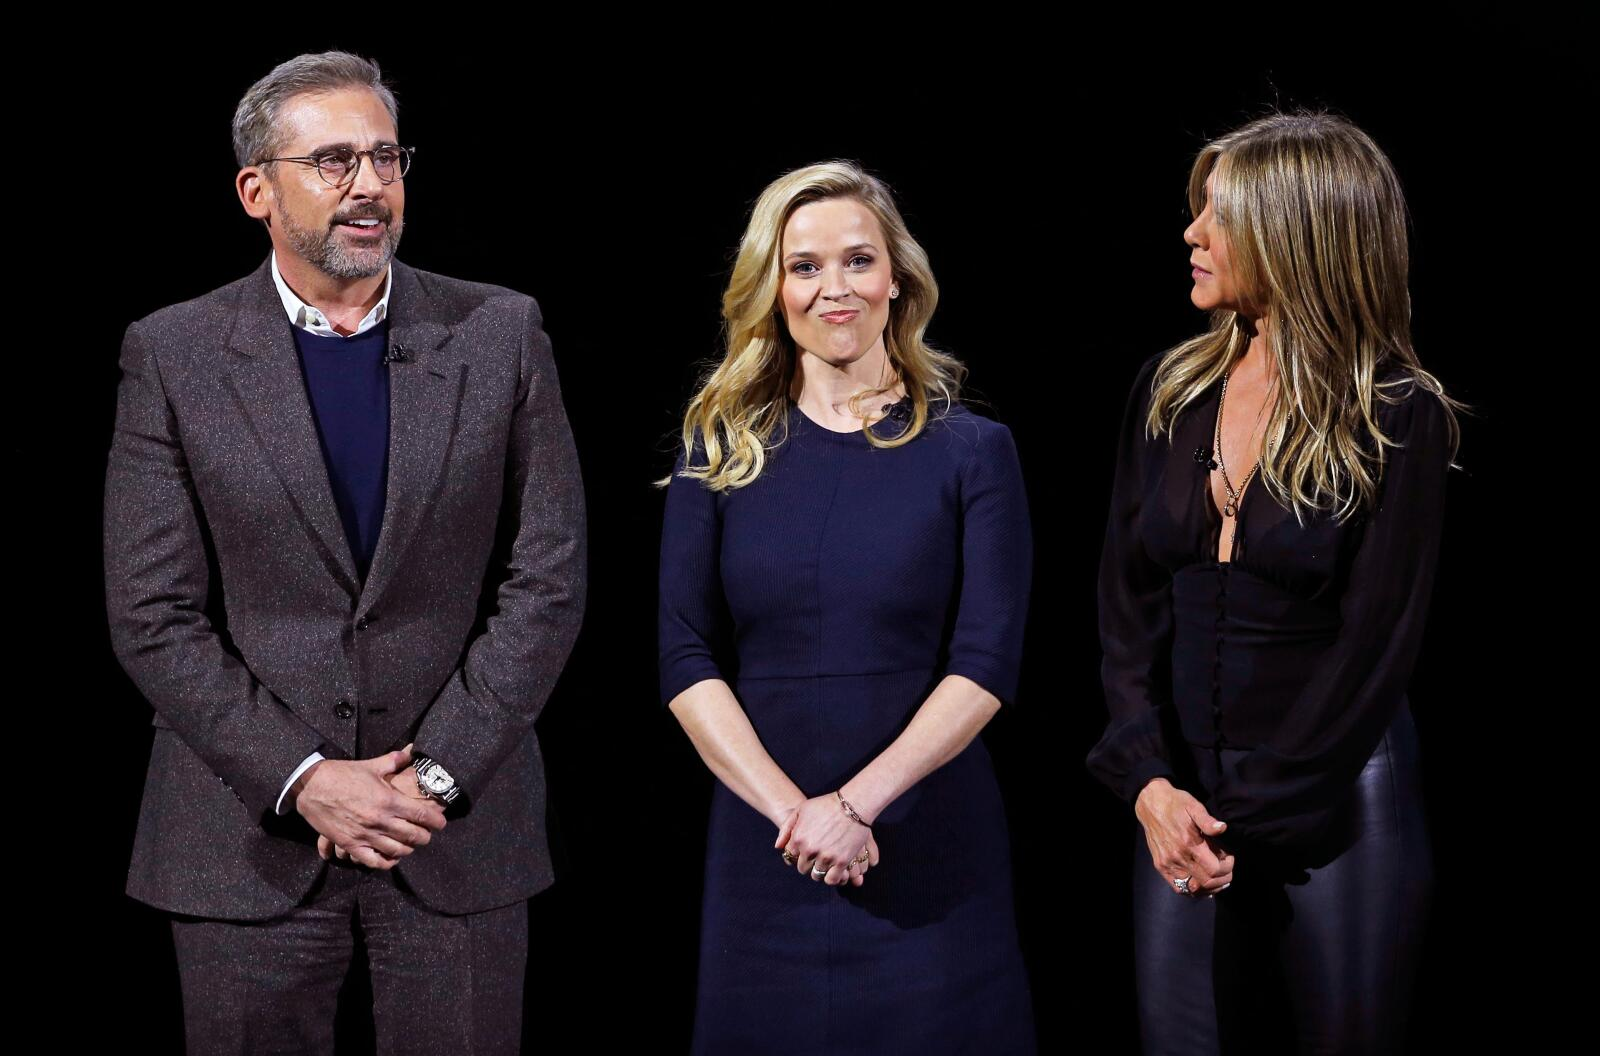 Steve Carell, Reese Witherspoon y Jennifer Aniston